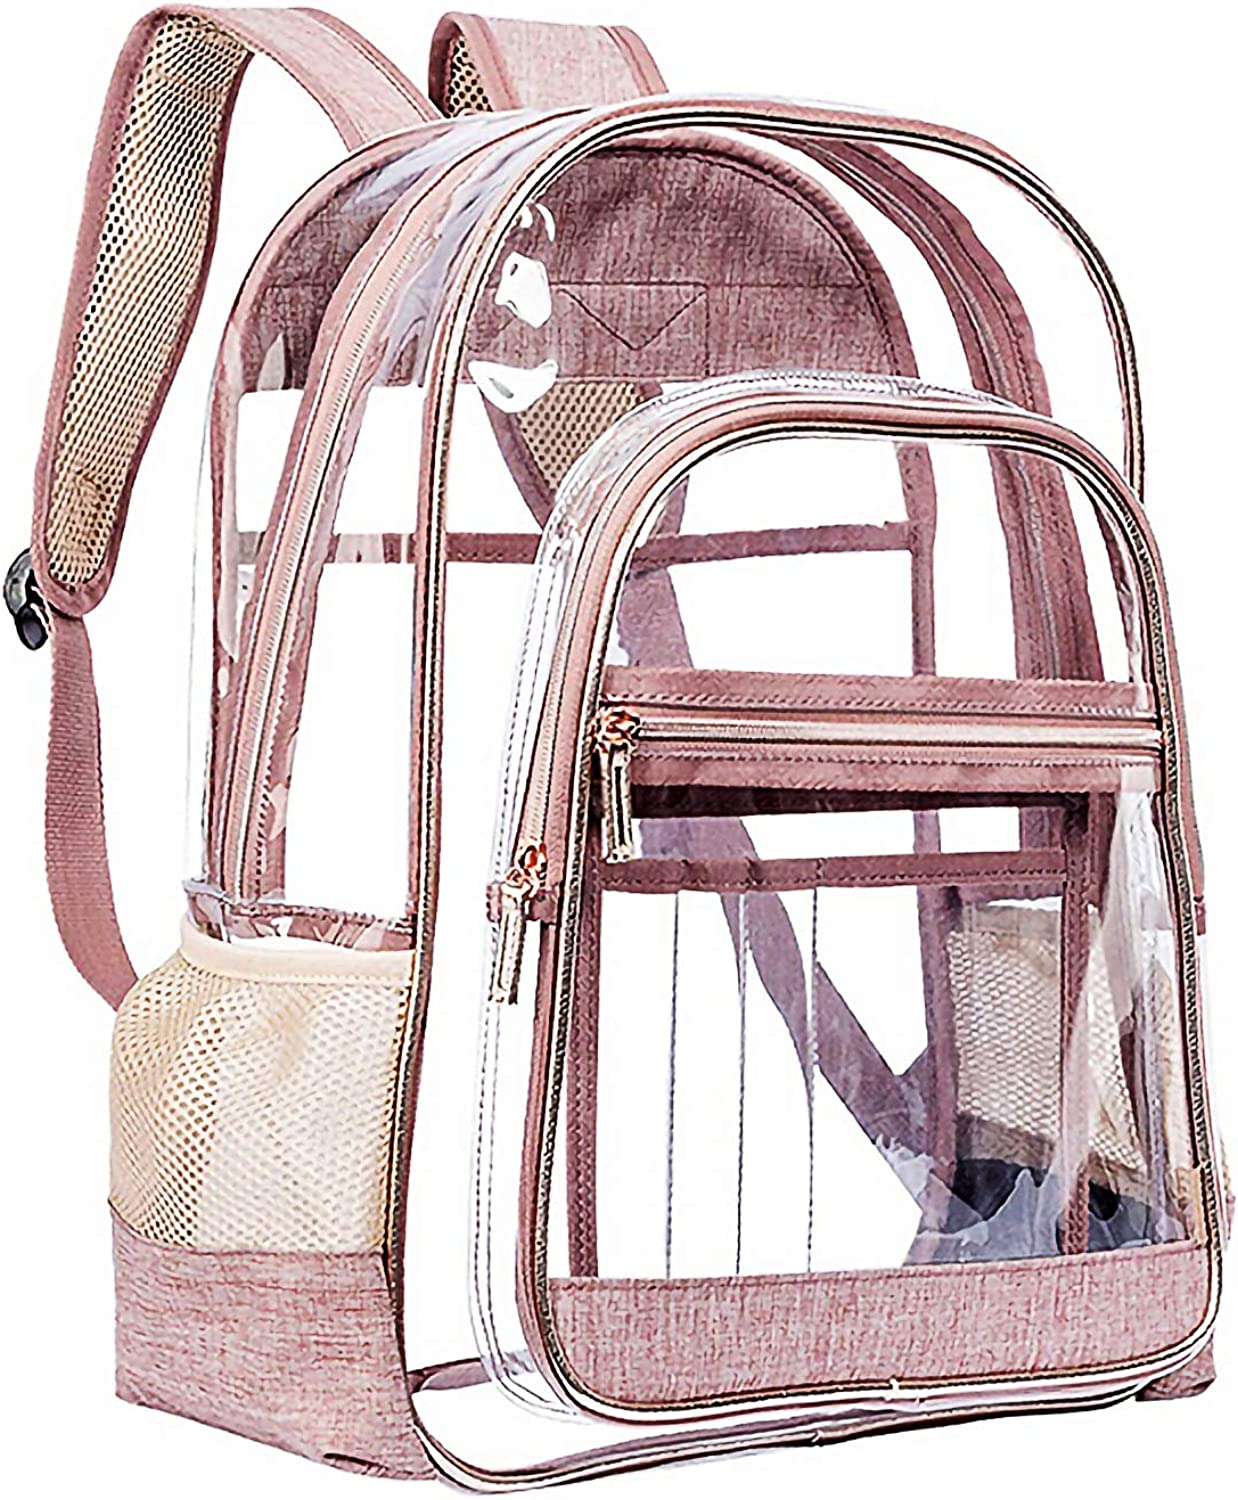 Okngr Heavy Duty Clear Backpack,See Through Clear Transparent Backpack